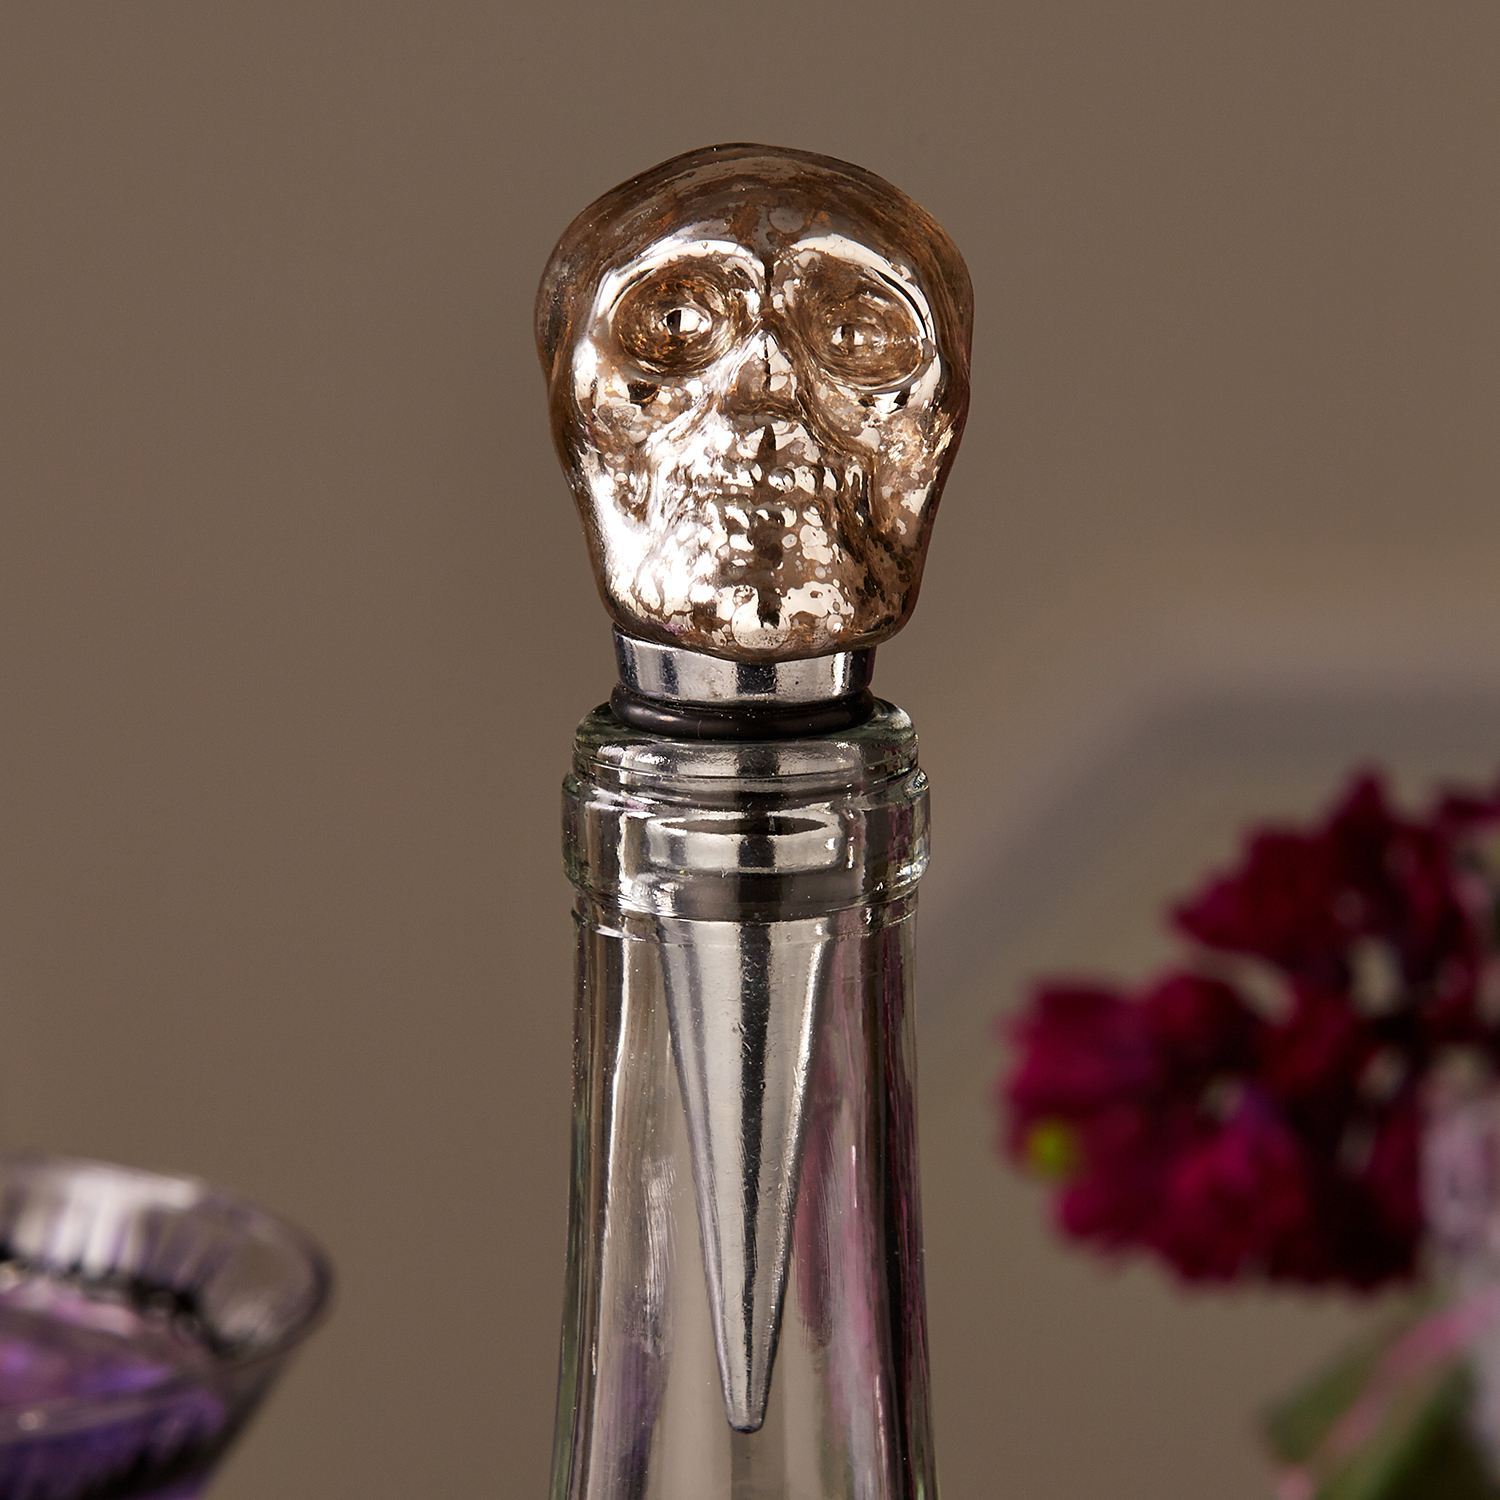 Spirited Skull bottle stopper